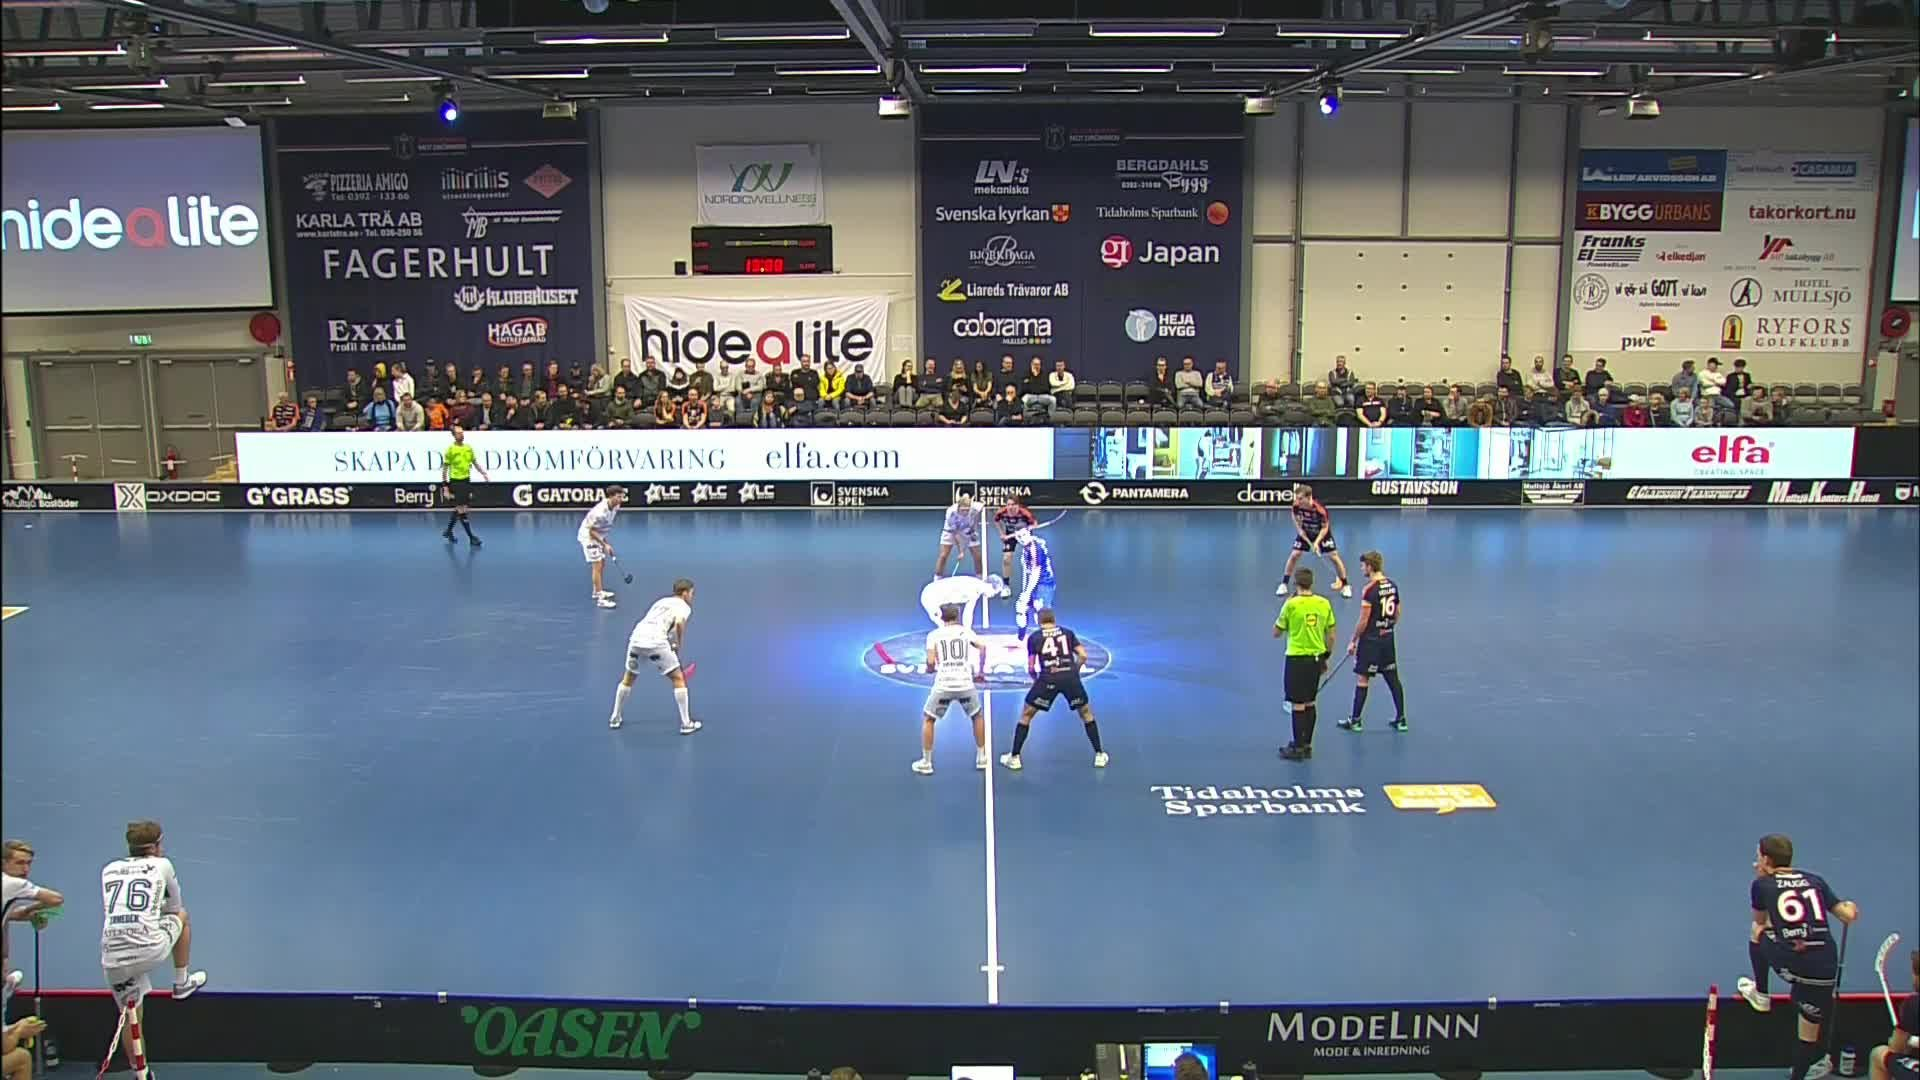 Highlights Mullsjö-Warberg 4 mars